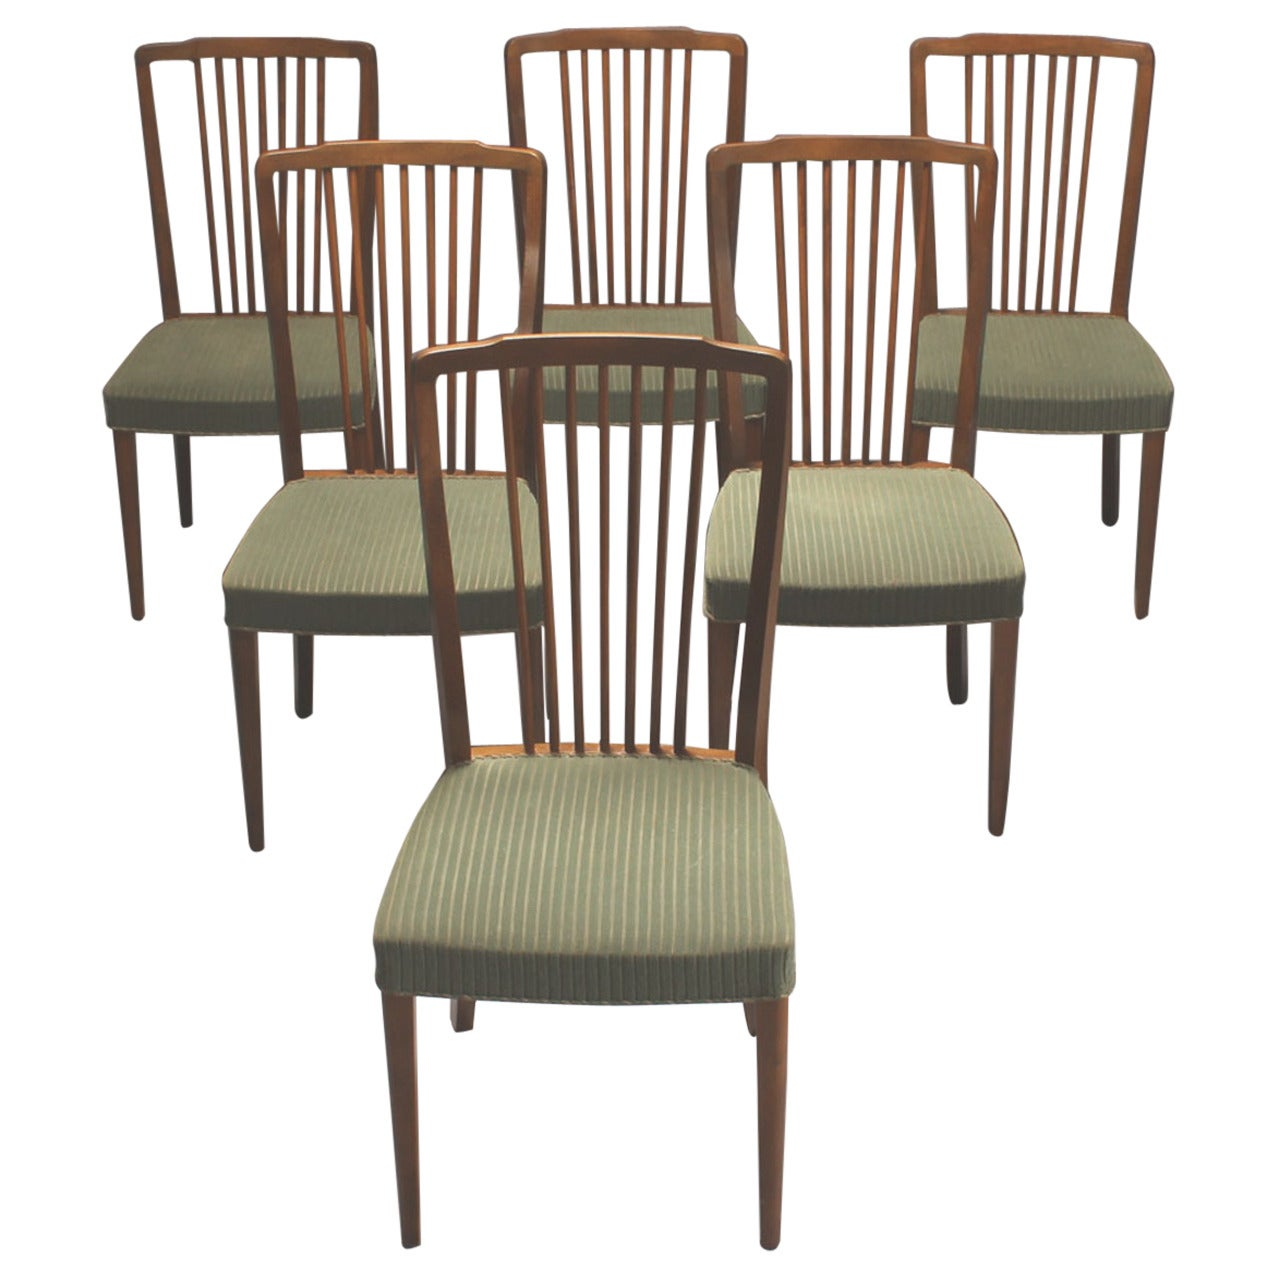 Spindle Dining Chairs Set Of Six 1940s Danish Spindle Back Dining Chairs At 1stdibs